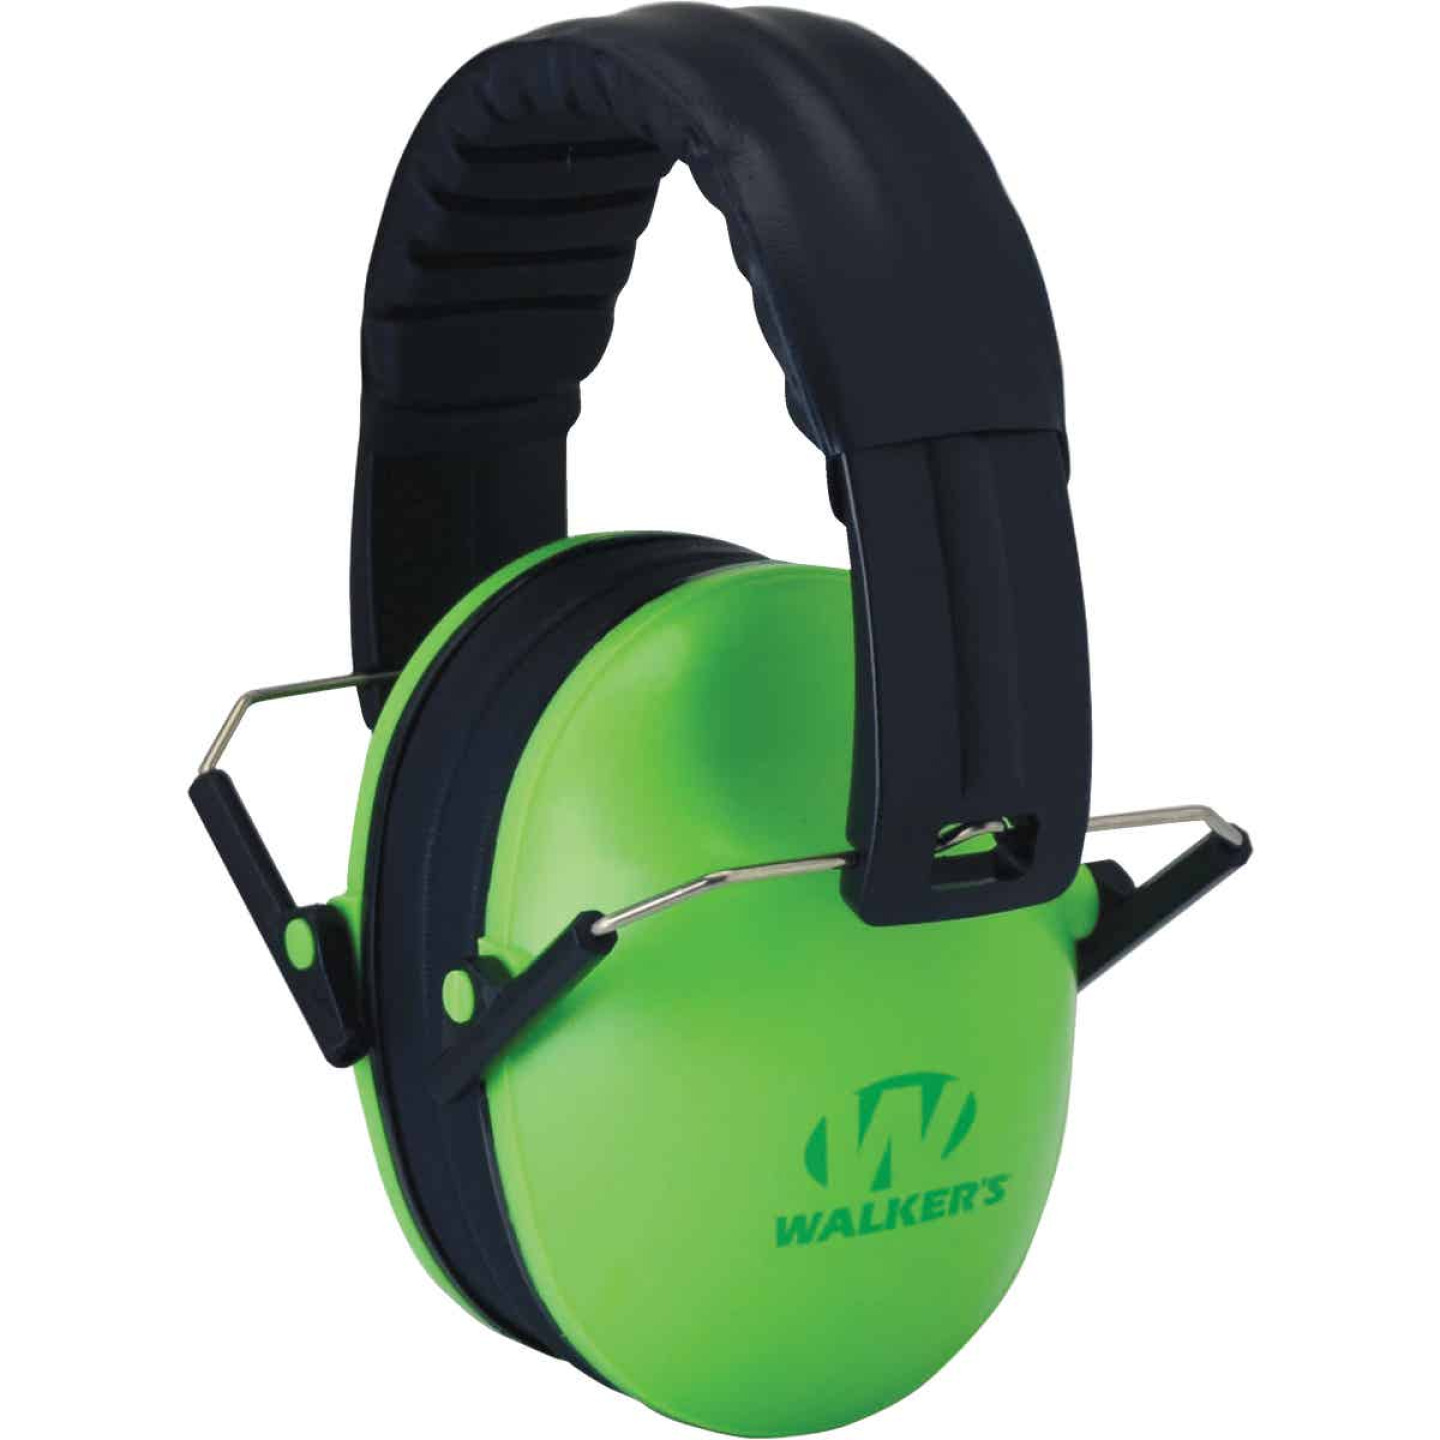 Walker's 23 dB NRR Child Size Earmuffs Image 1